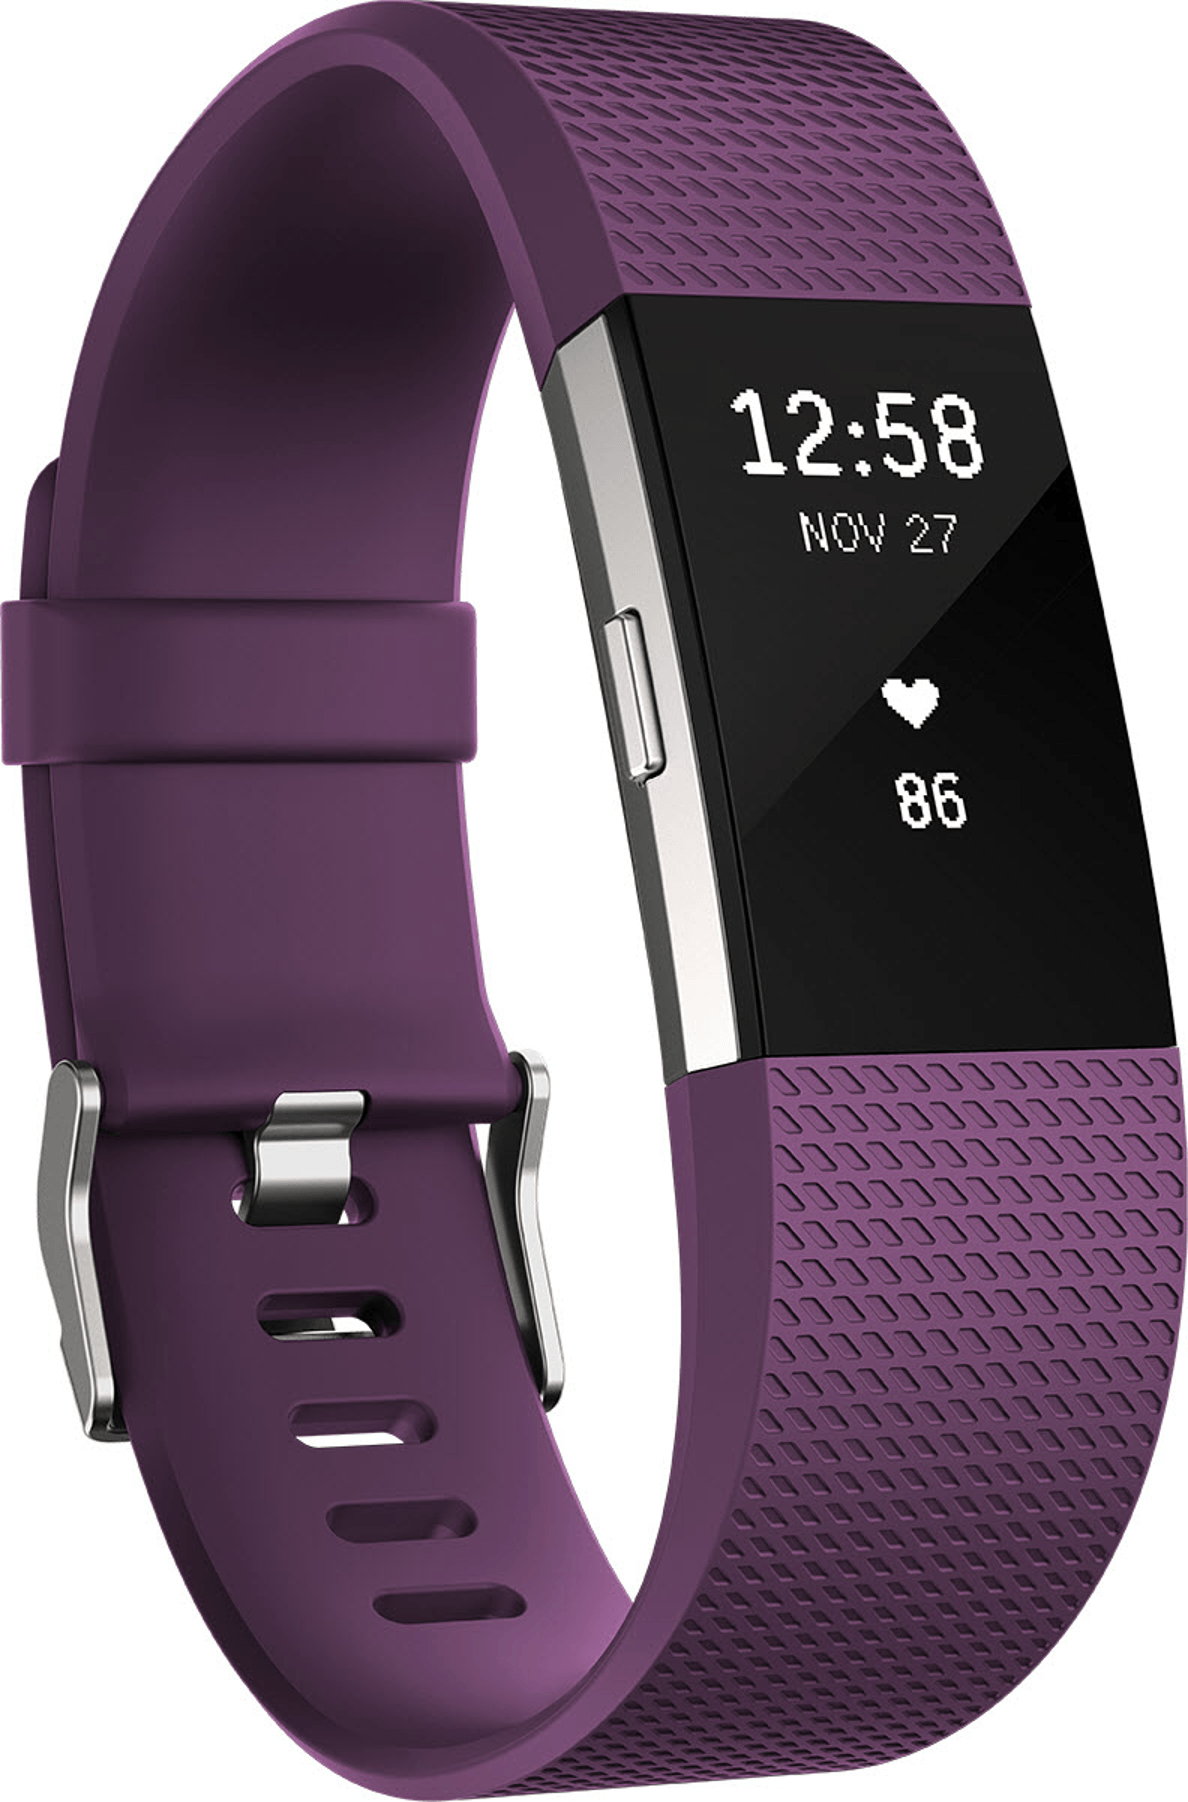 Fitbit Charge 2 Large Activity Tracker 165 206 Mm Kunststoff Lila Silber 00816137020299 Highlights Nn Aufzeichnung Al Fitbit Fitness Tracker Fitness Uhr